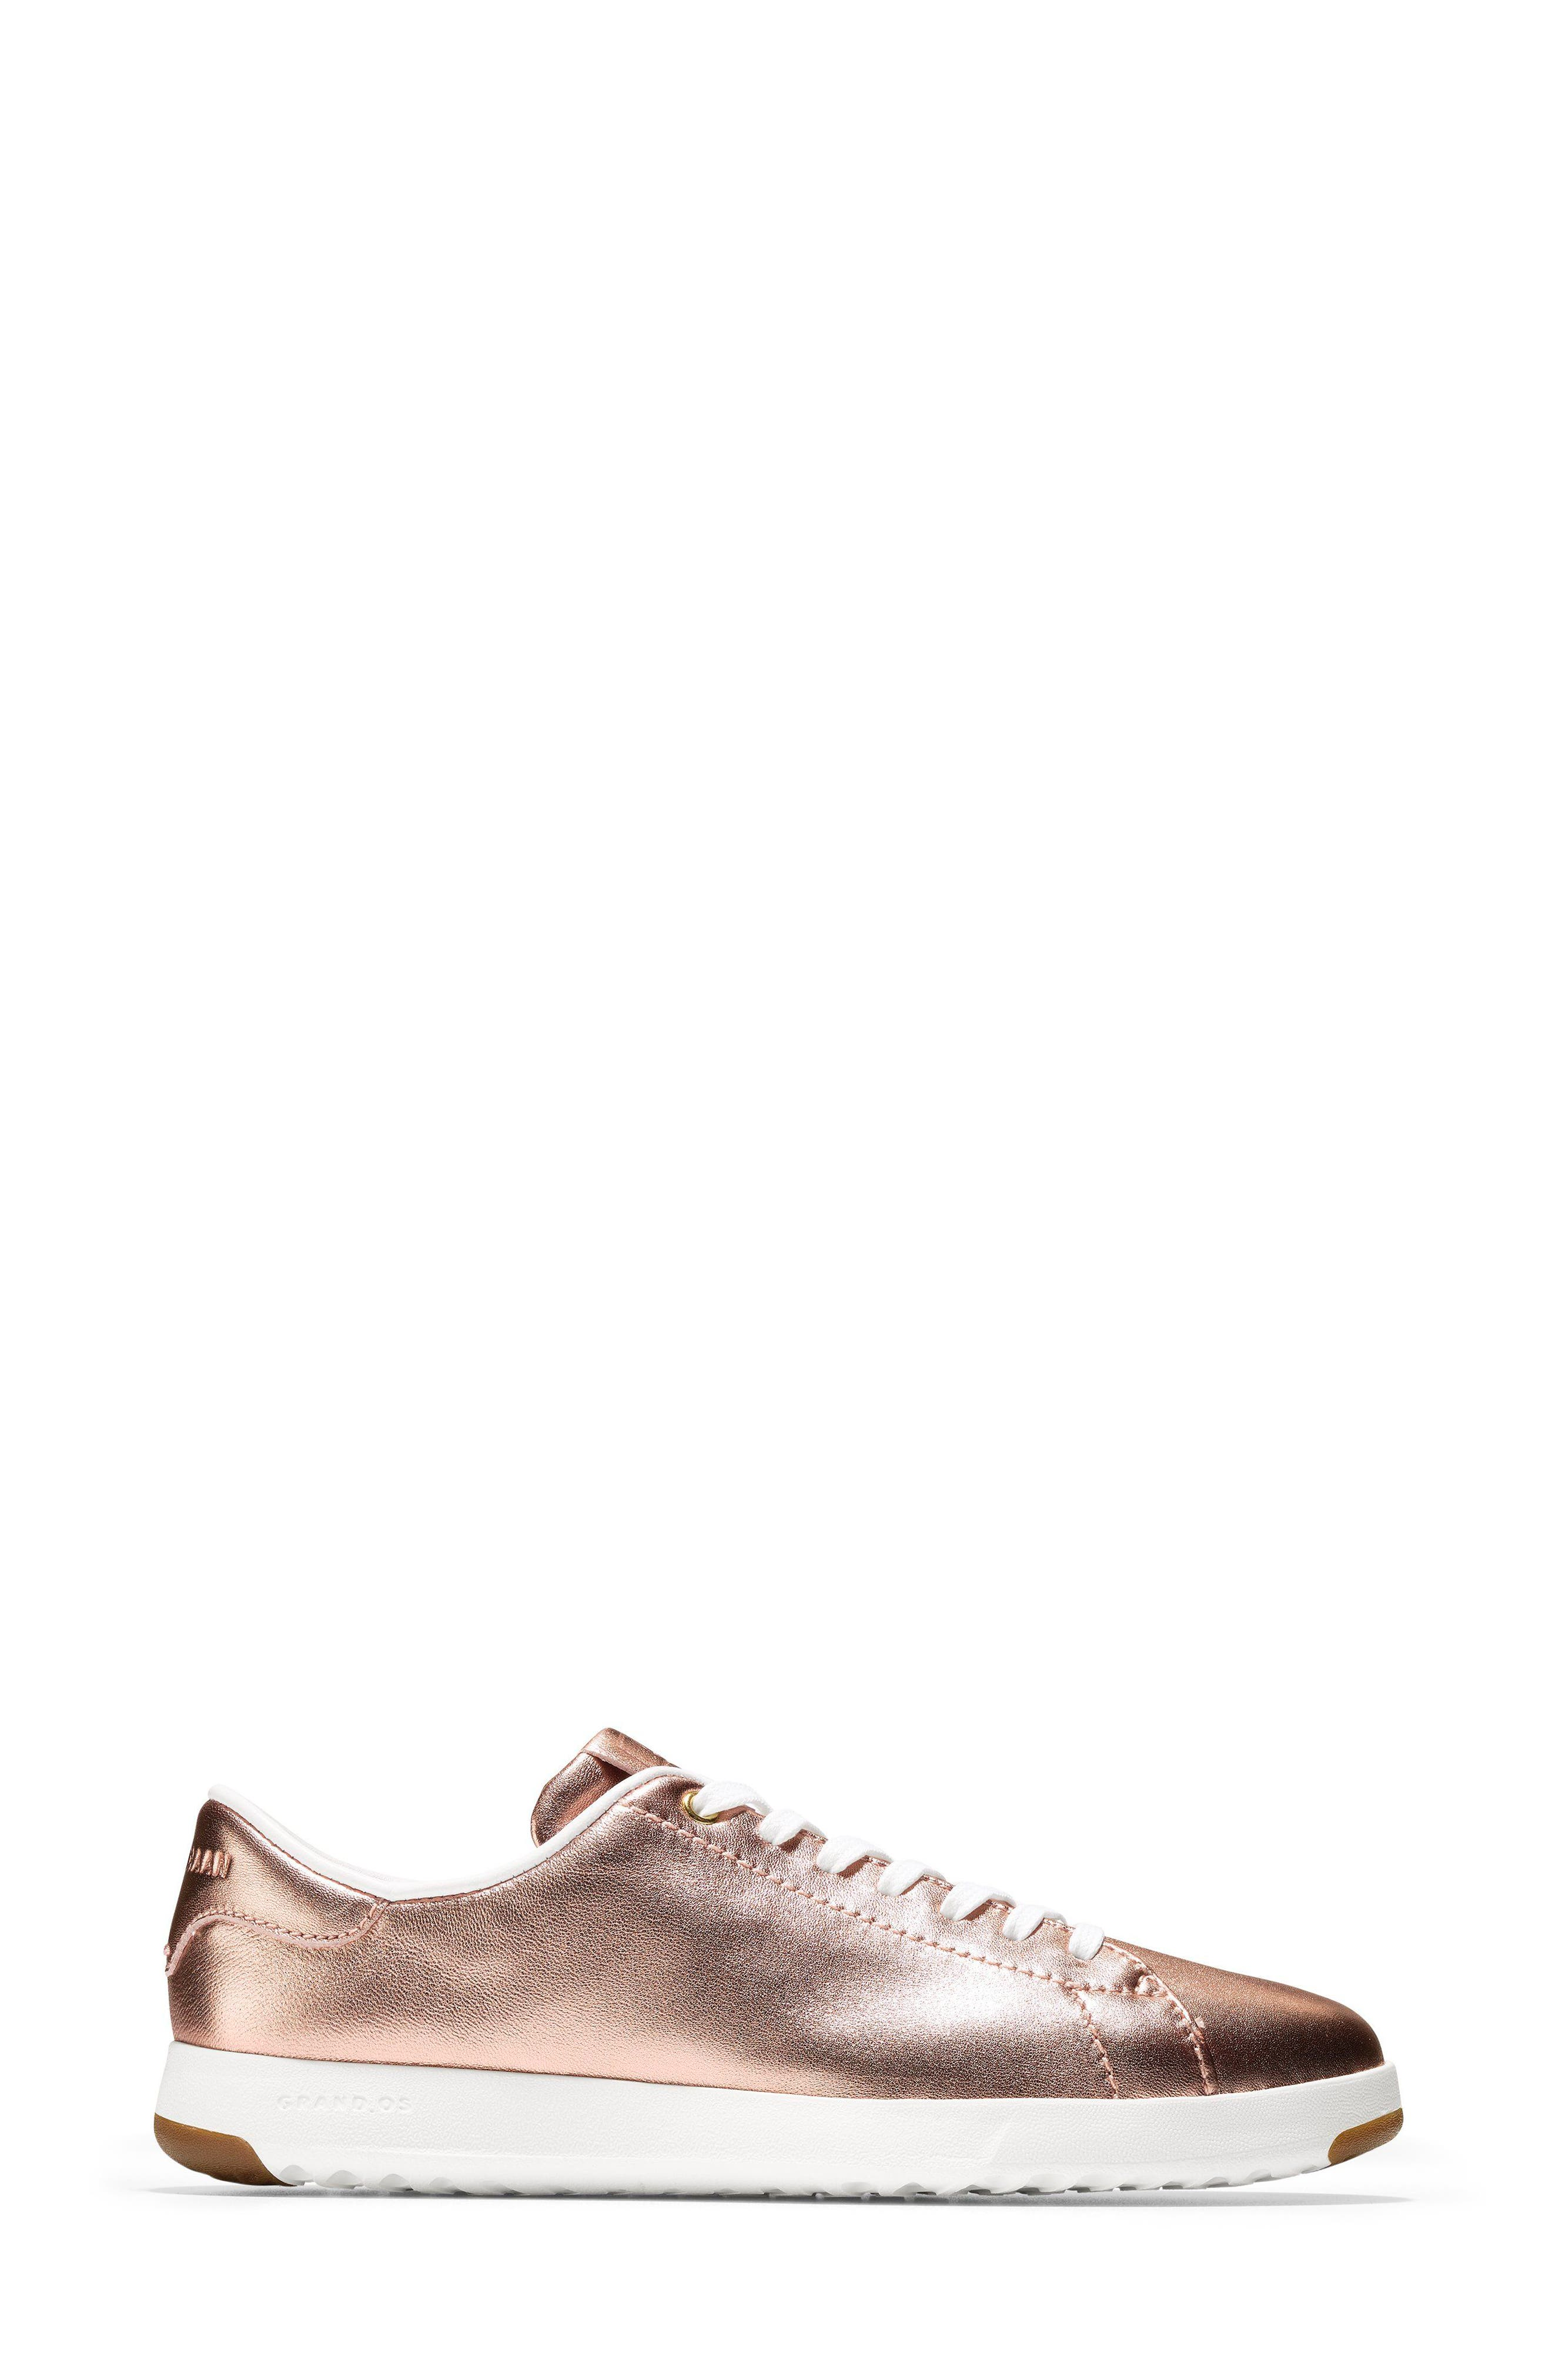 GrandPro Tennis Shoe,                             Alternate thumbnail 3, color,                             ROSE GOLD LEATHER